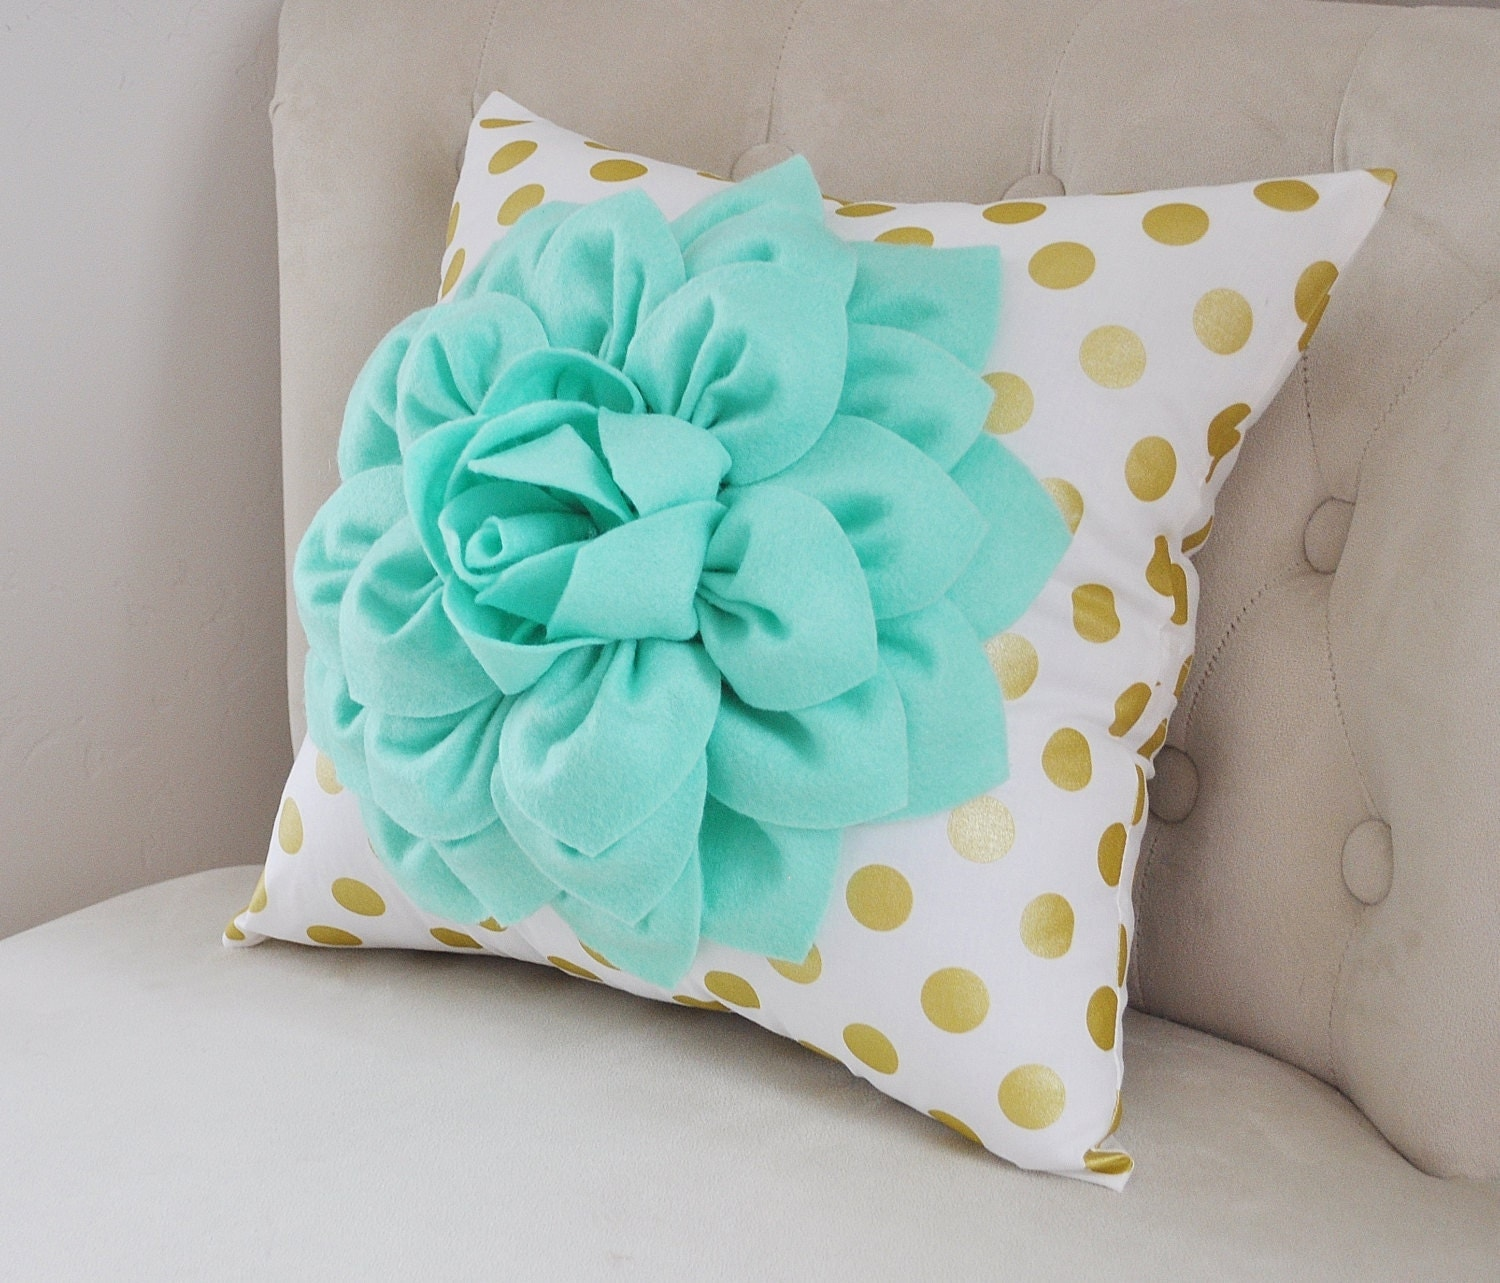 Gold Polka Dot Pillow With Mint Green Dahlia Flower